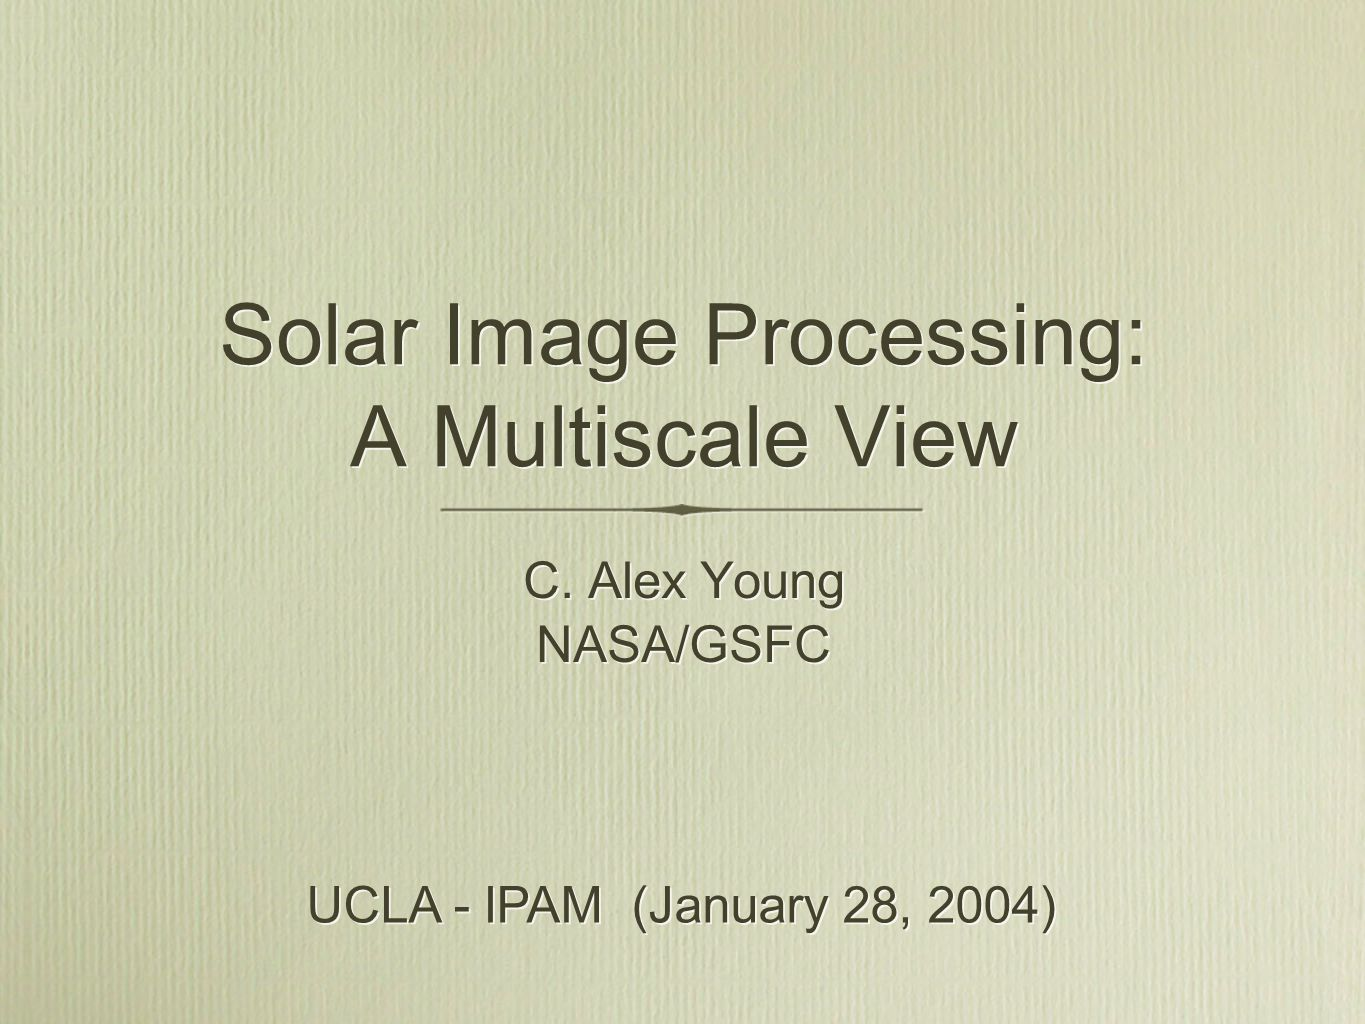 Solar Image Processing: A Multiscale View C. Alex Young NASA/GSFC C. Alex Young NASA/GSFC UCLA - IPAM (January 28, 2004)